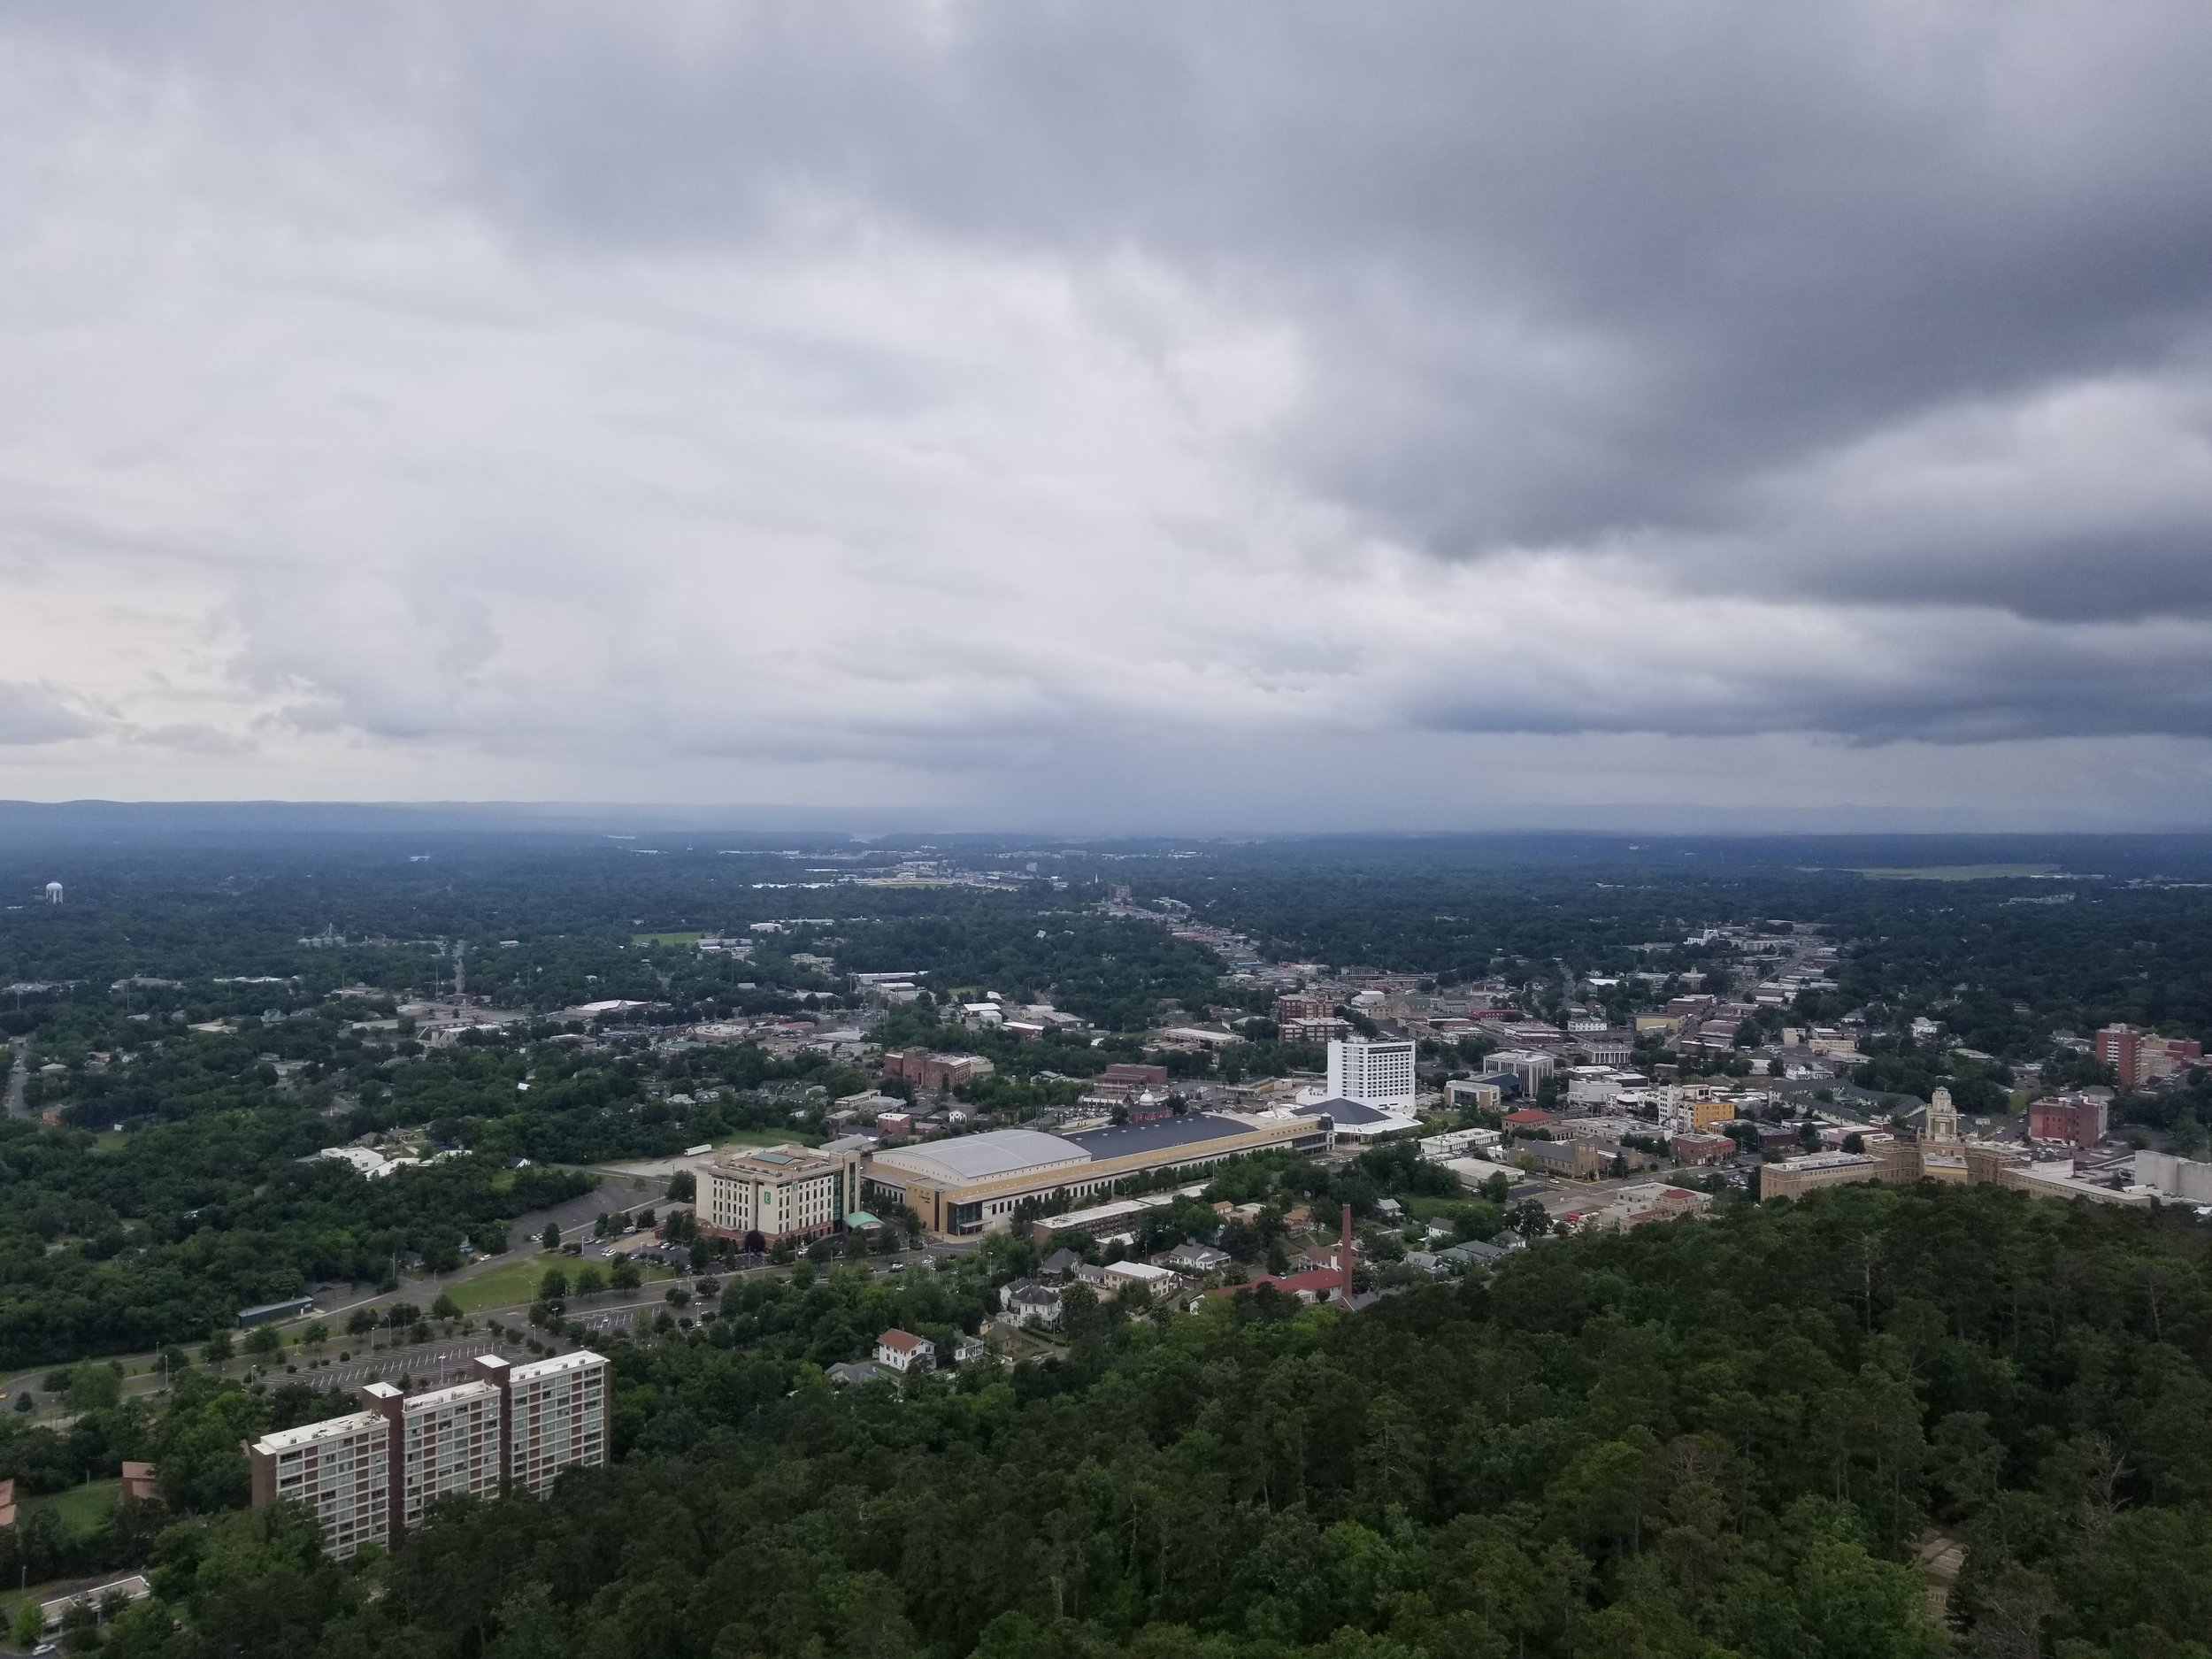 View of downtown Hot Springs from the top of Mountain Tower